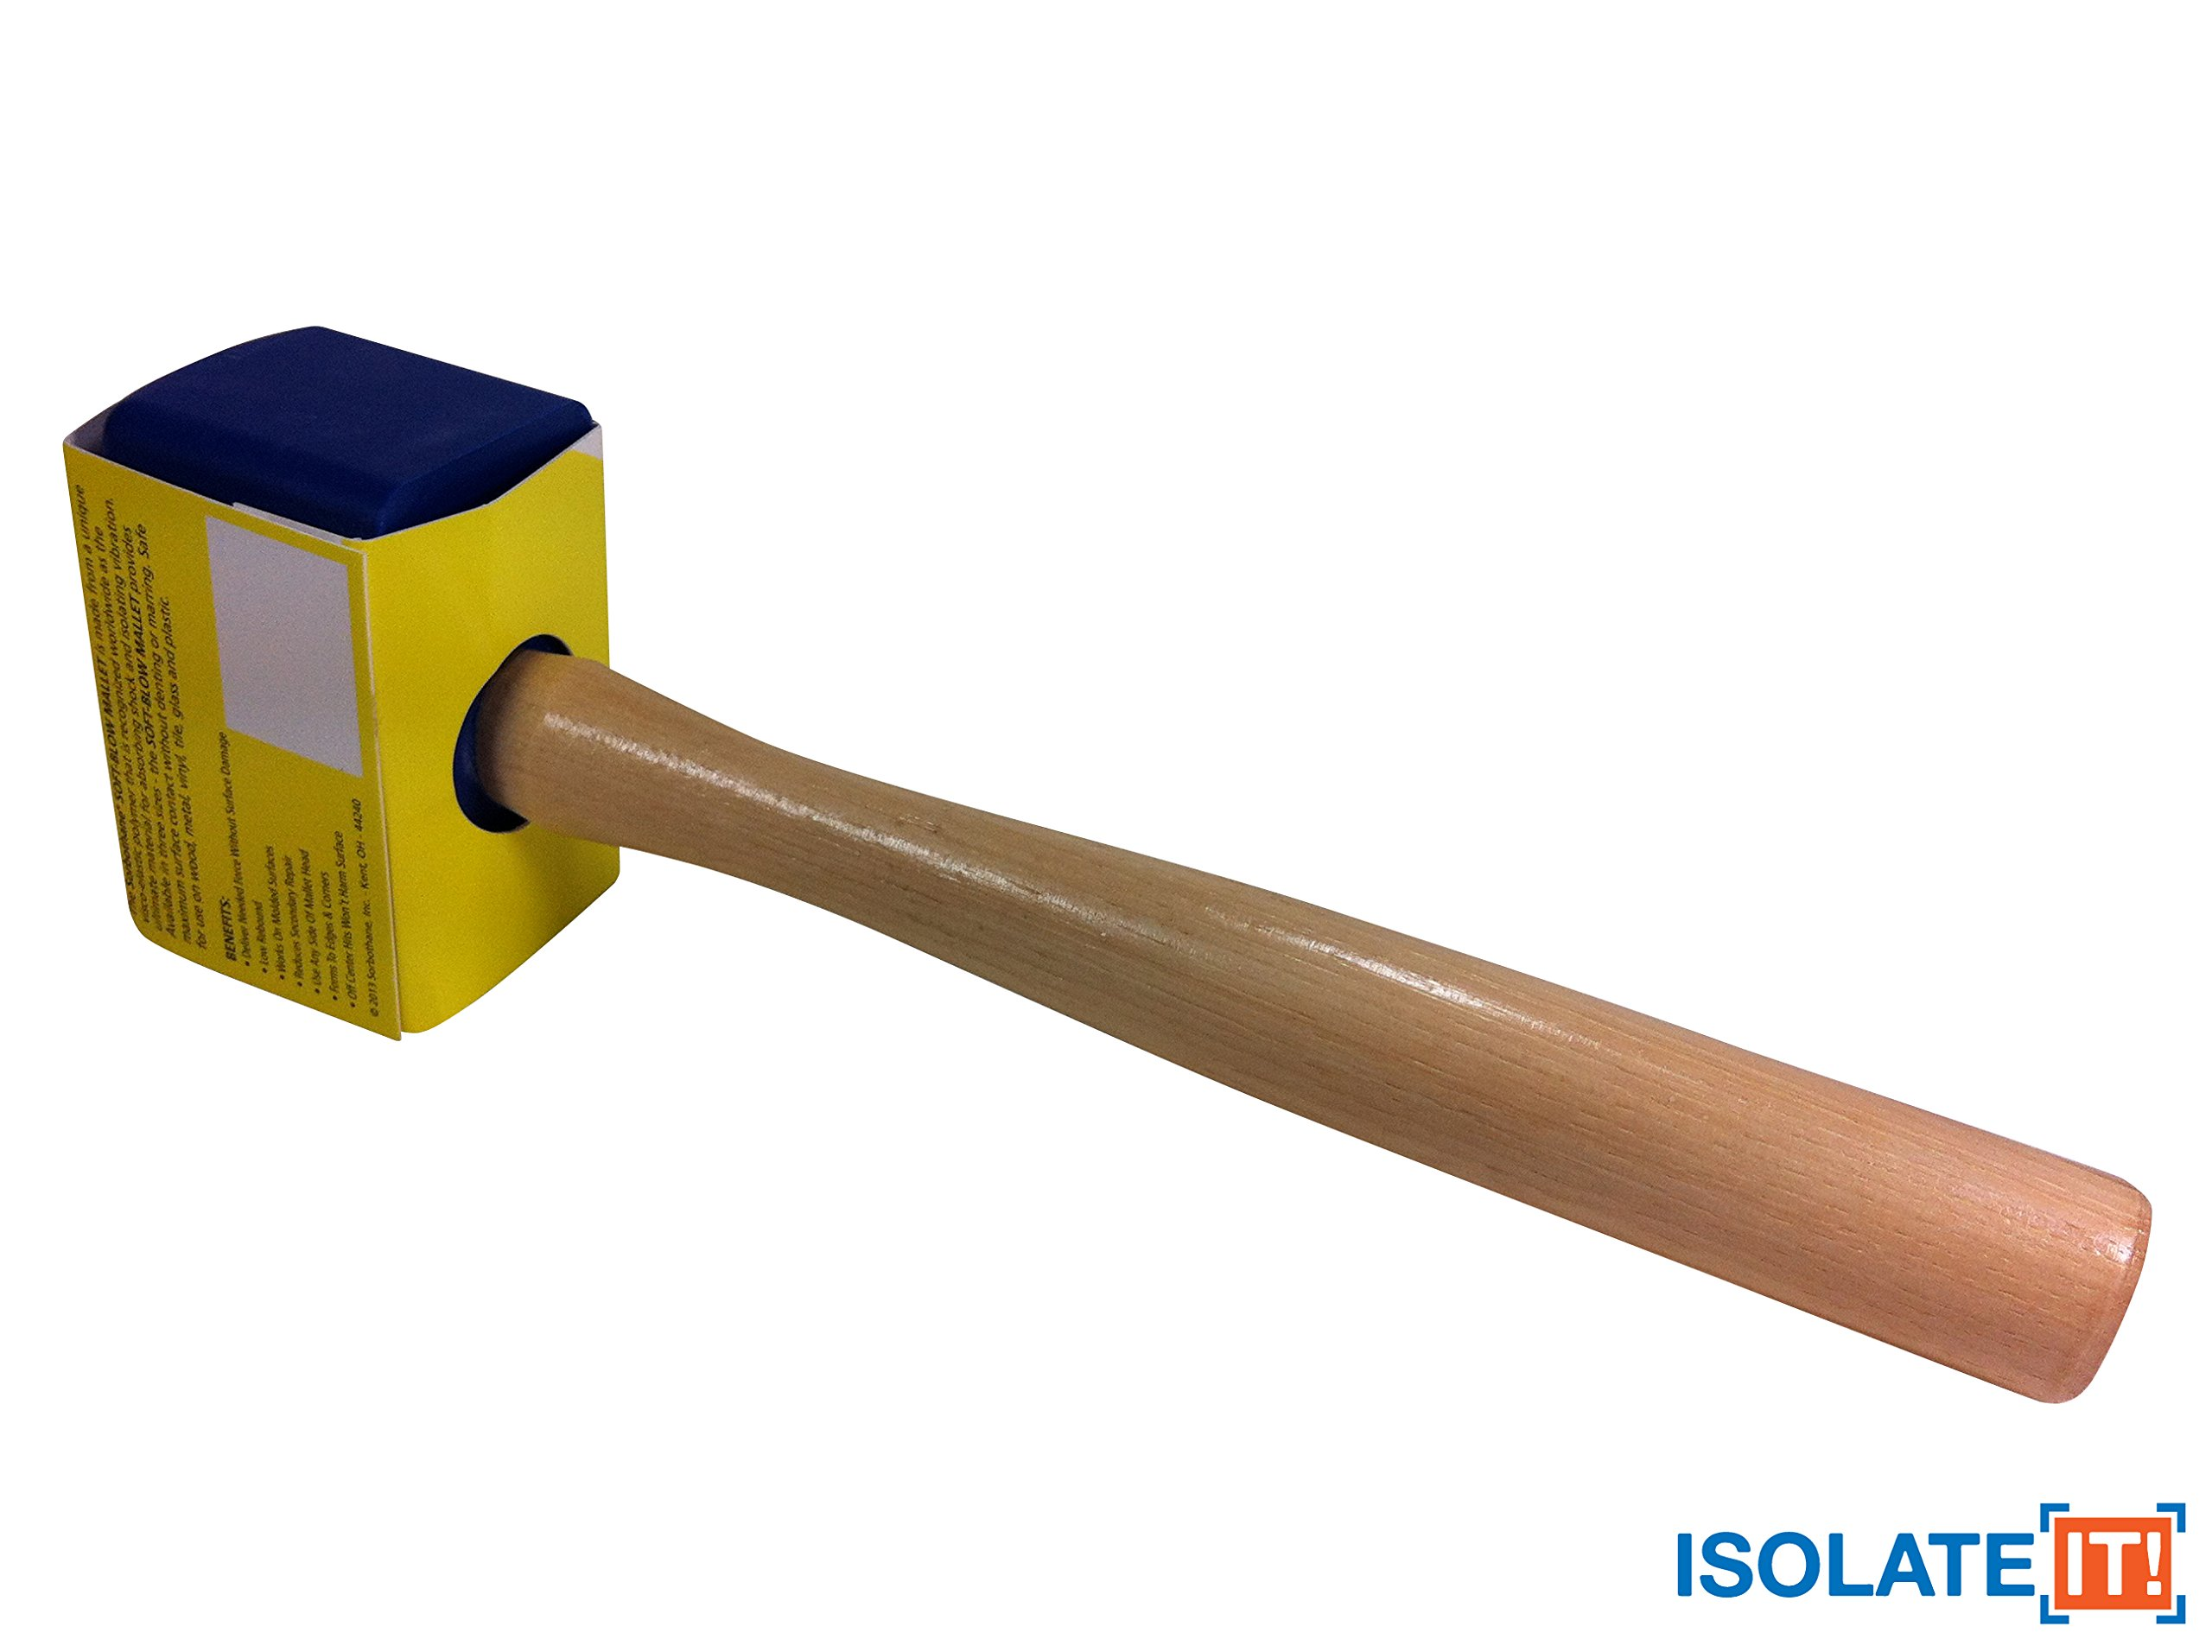 Isolate It!: Sorbothane Soft-blow Mallet for Automotive, Cabinetry, Carpentry and Glass Work - Small 5.5oz by Isolate It! (Image #2)